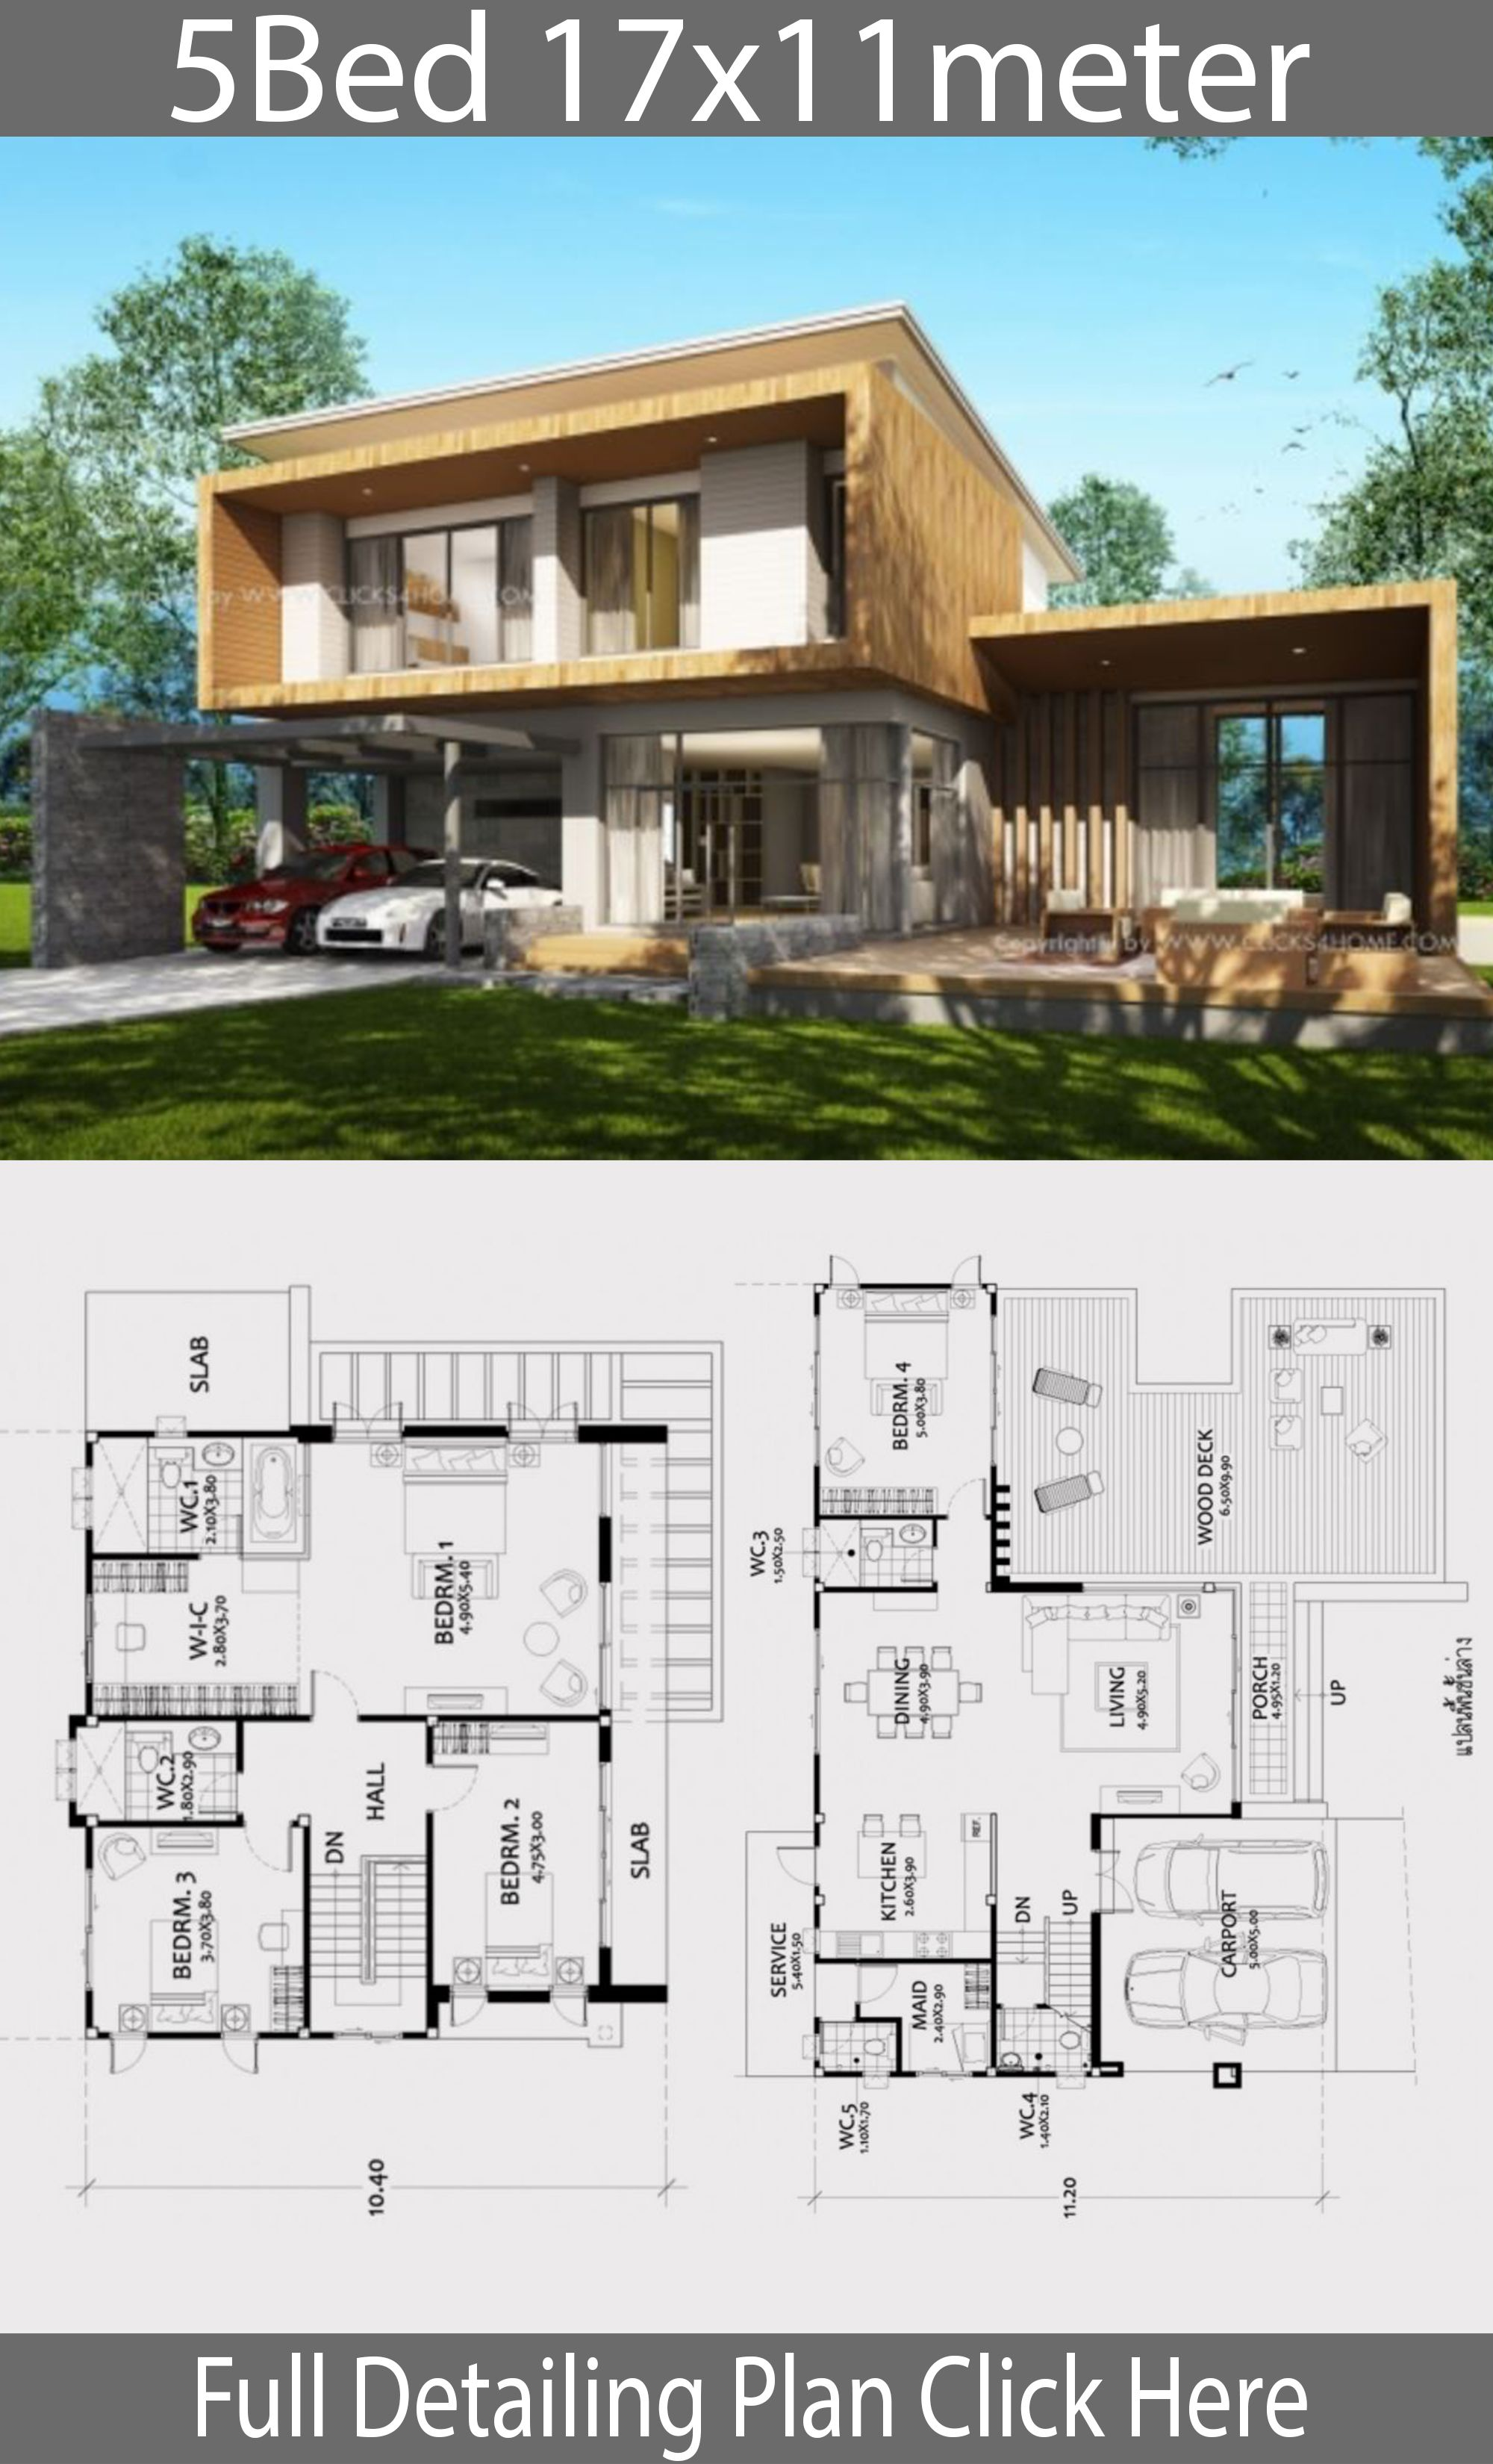 Home Design Plan 17x11m With 5 Bedroom Architectural House Plans